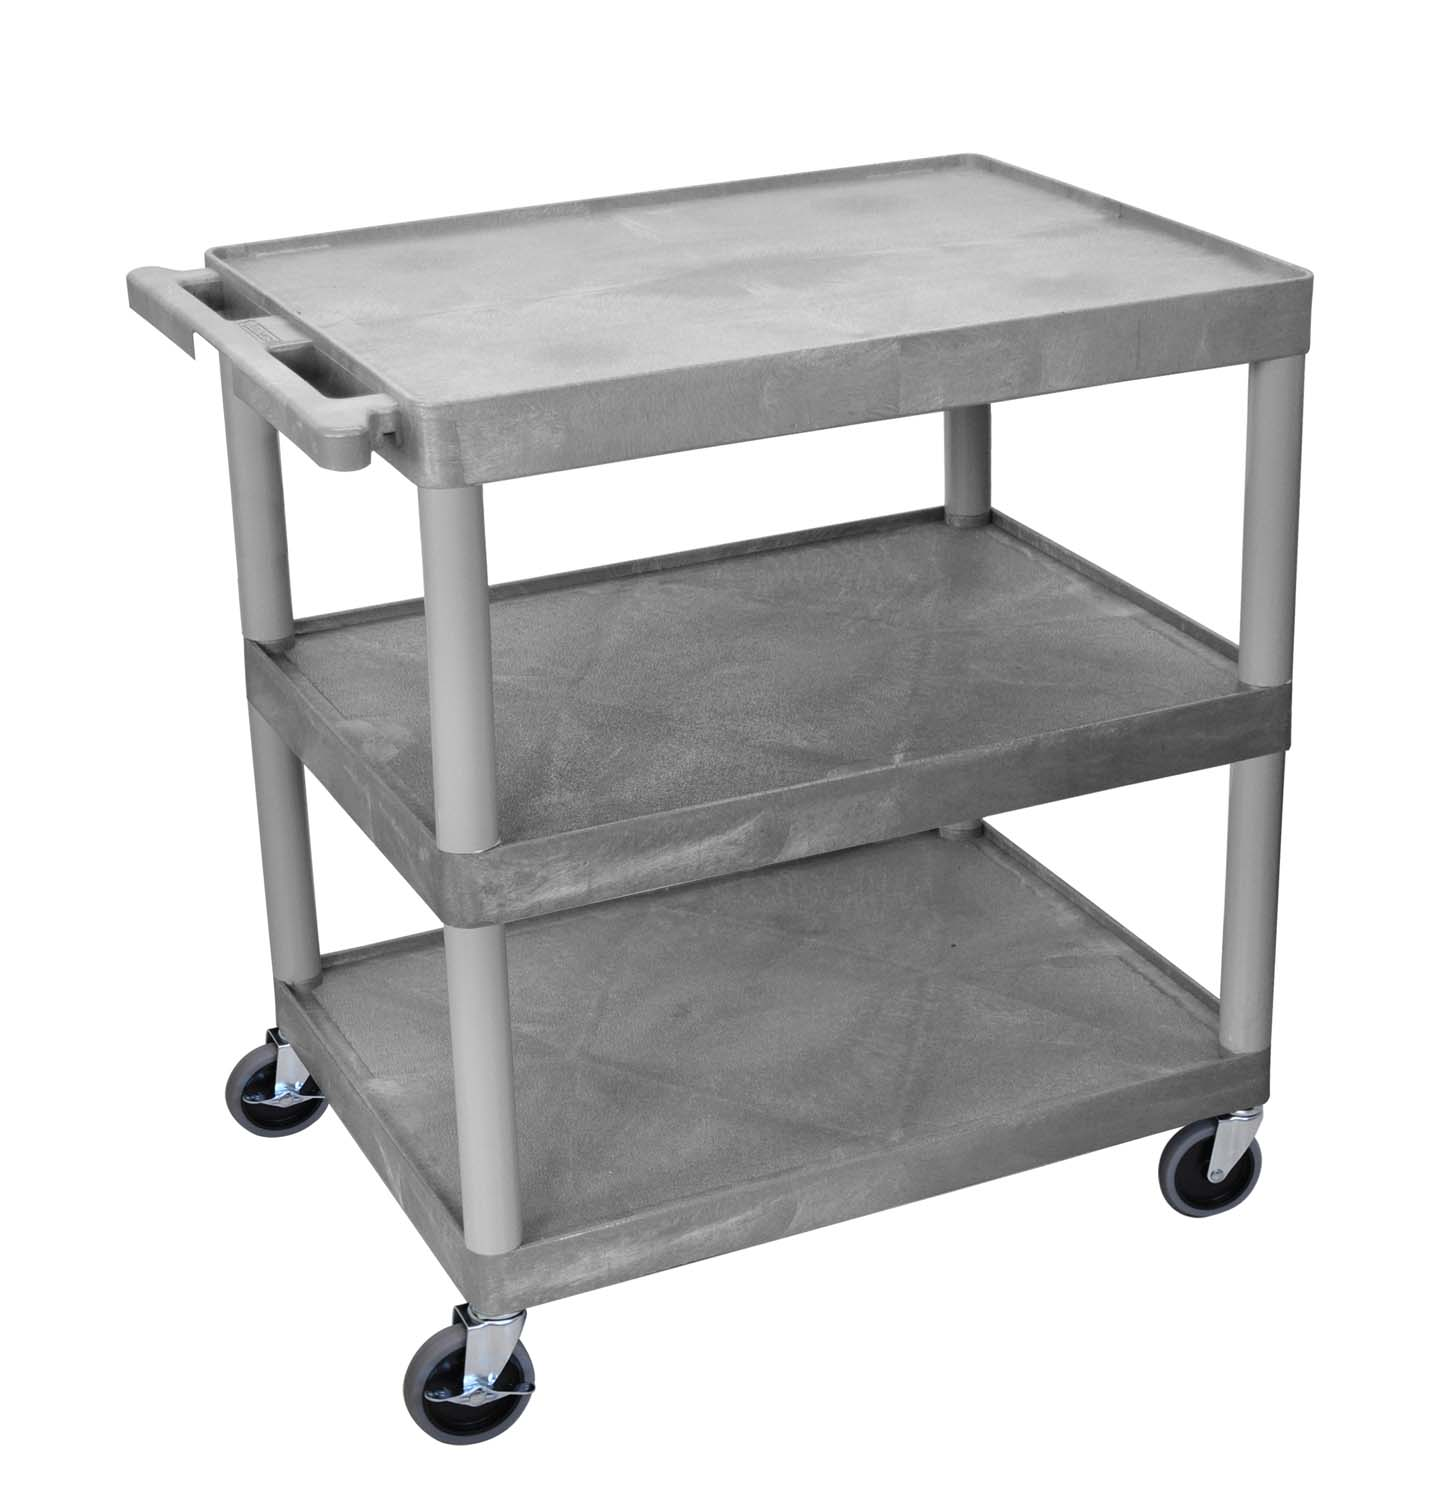 Offex Utility Cart - 3 Shelves Structural Foam Plastic